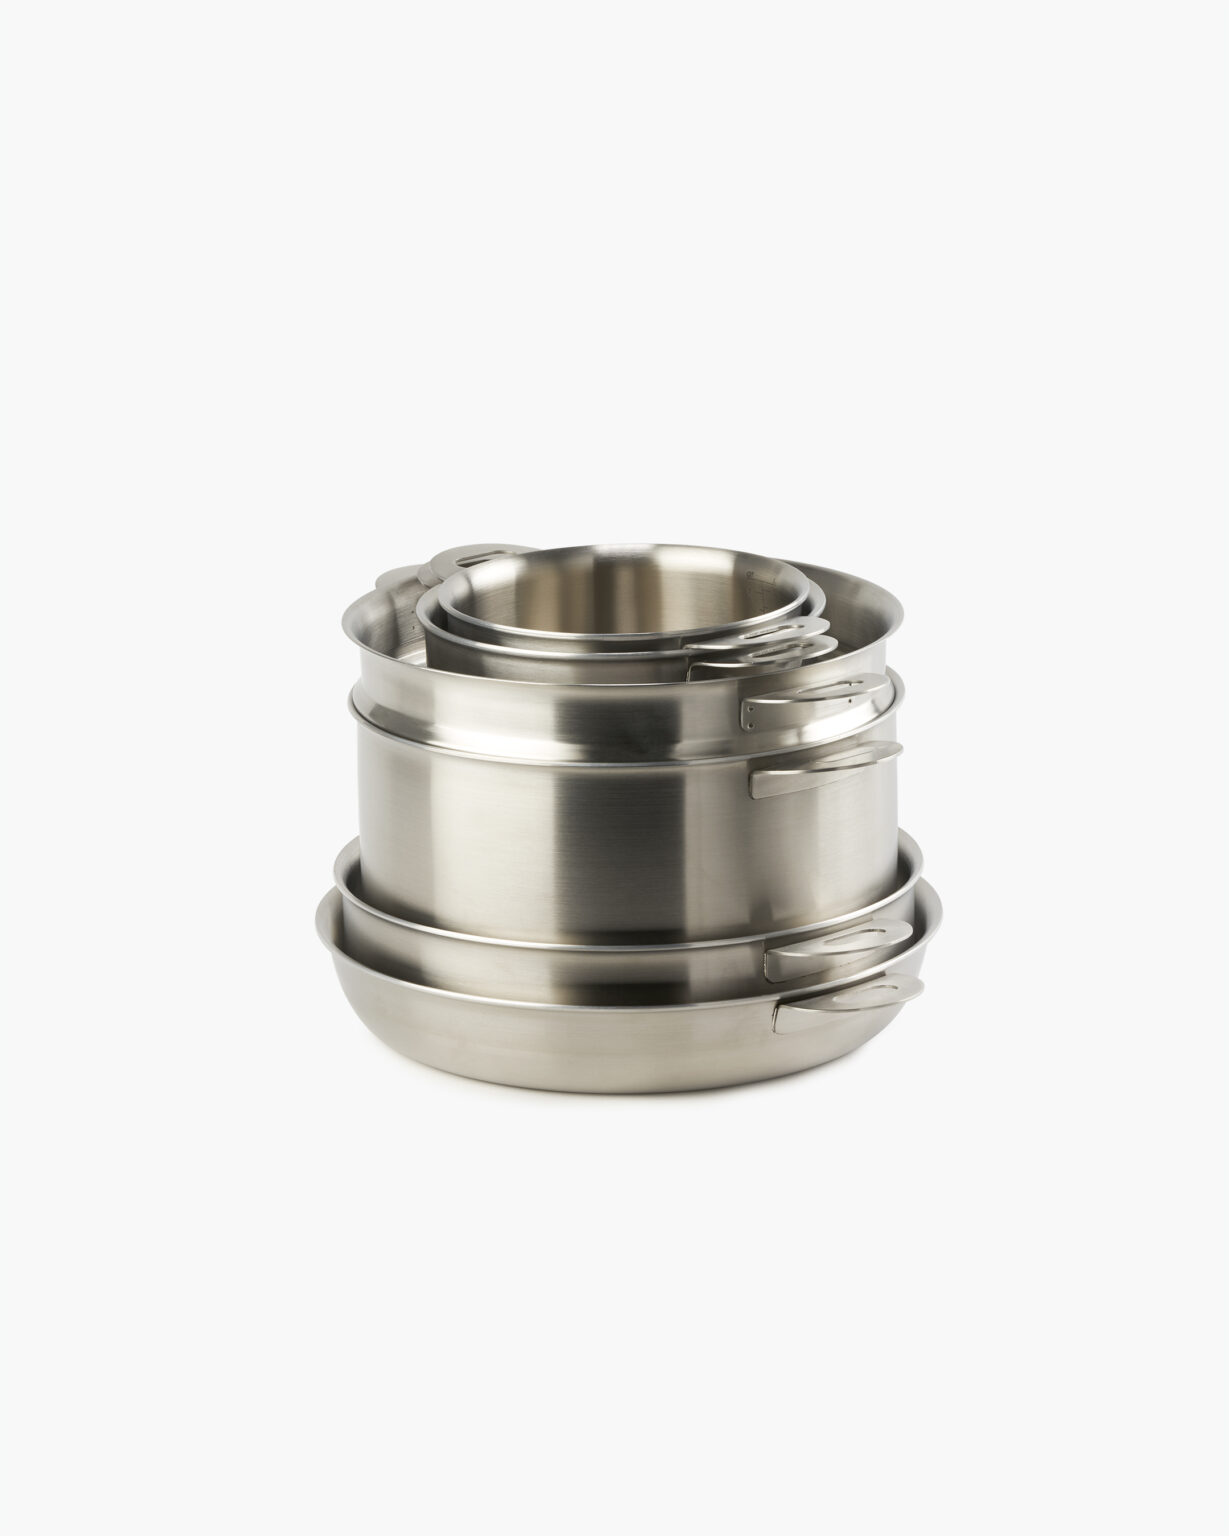 ENSEMBL Stackware Full6 Stainless Steel Fully Clad Cookware